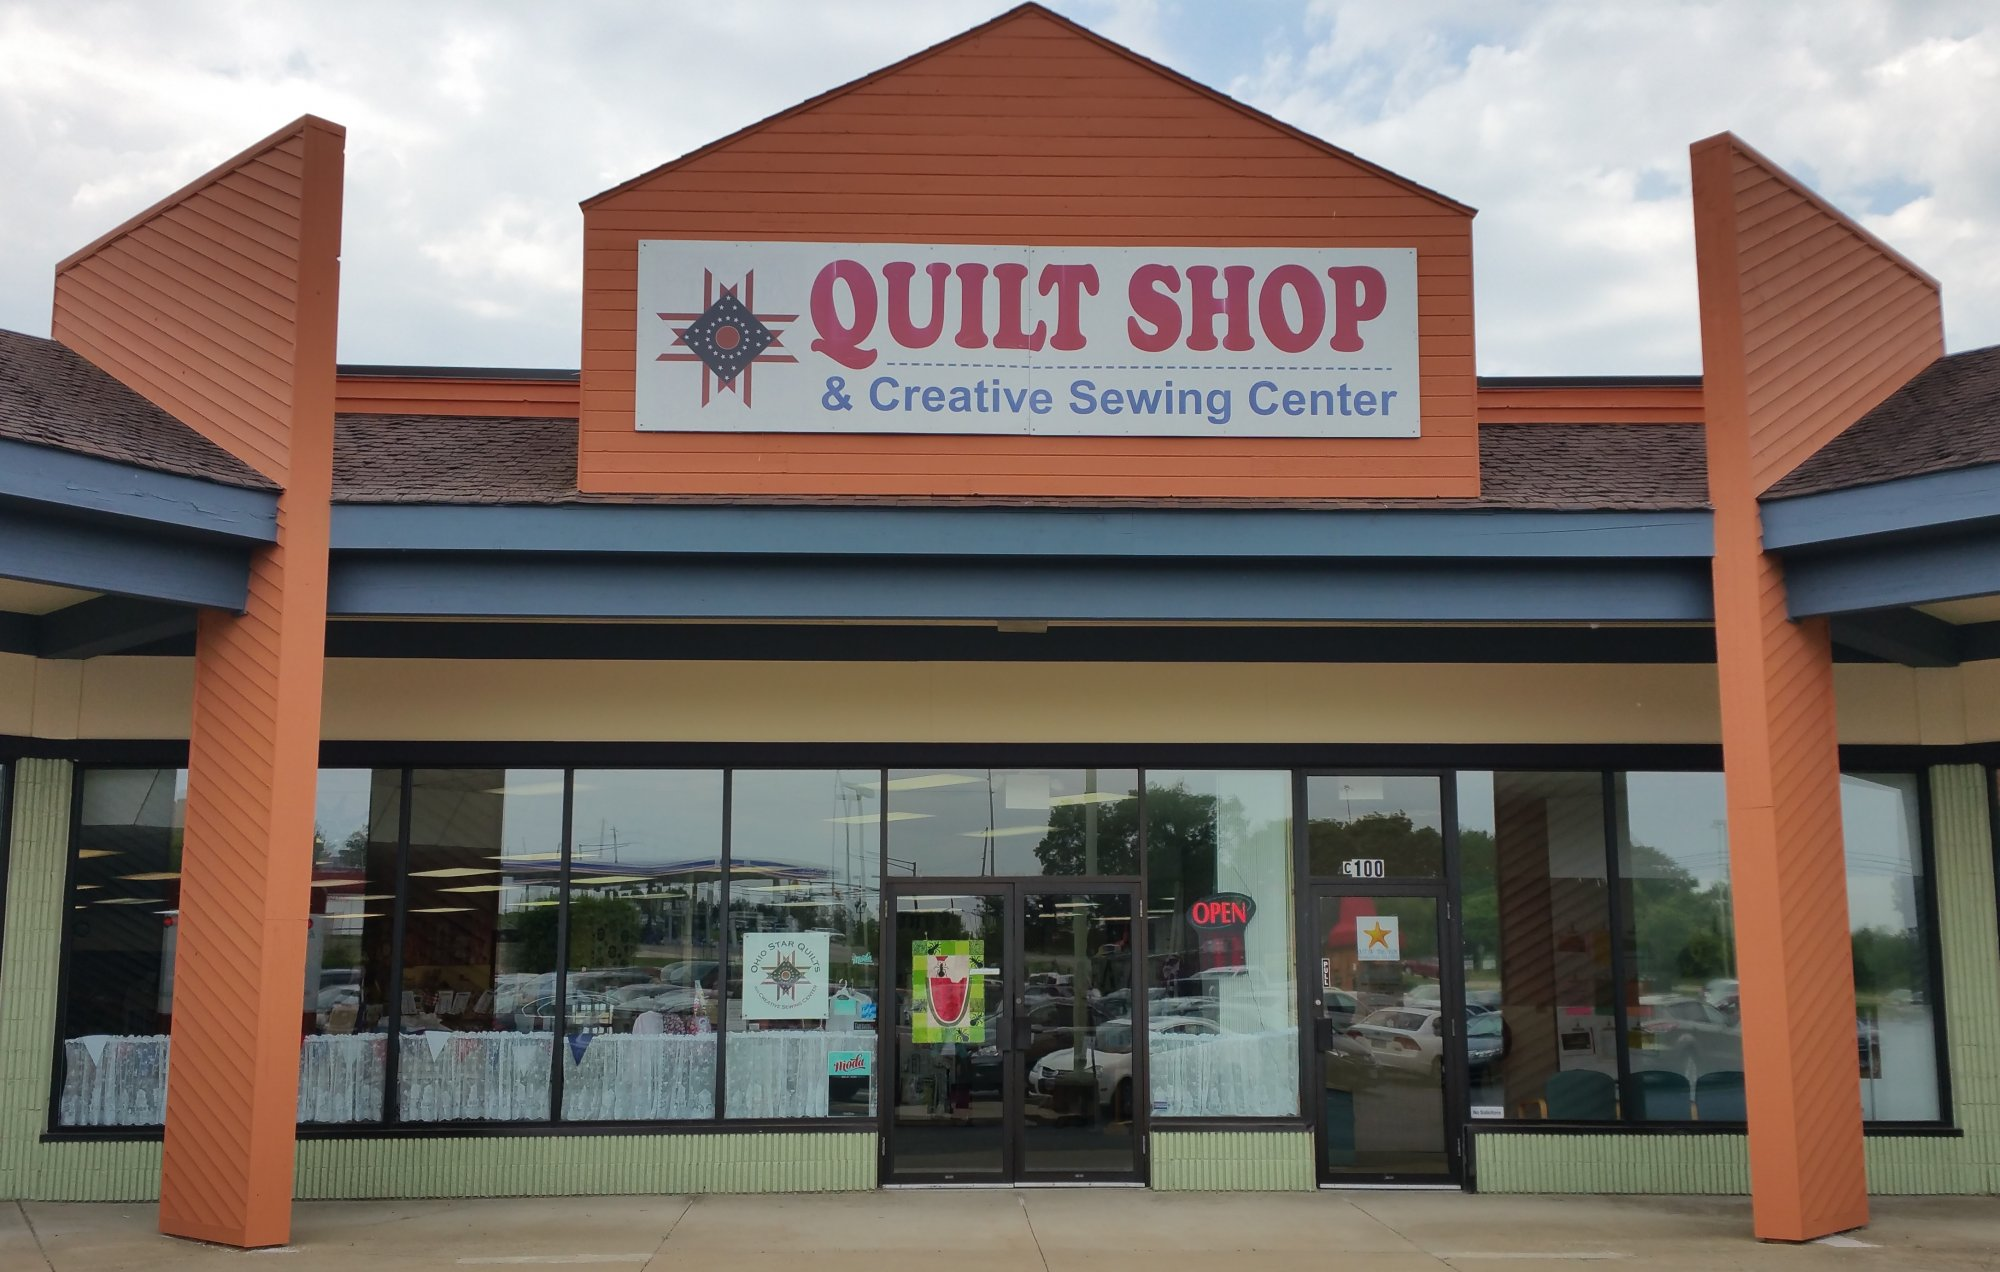 Ohio Star Quilts | Akron Ohio's Premier Choice for Quality ... : ohio star quilt shop - Adamdwight.com